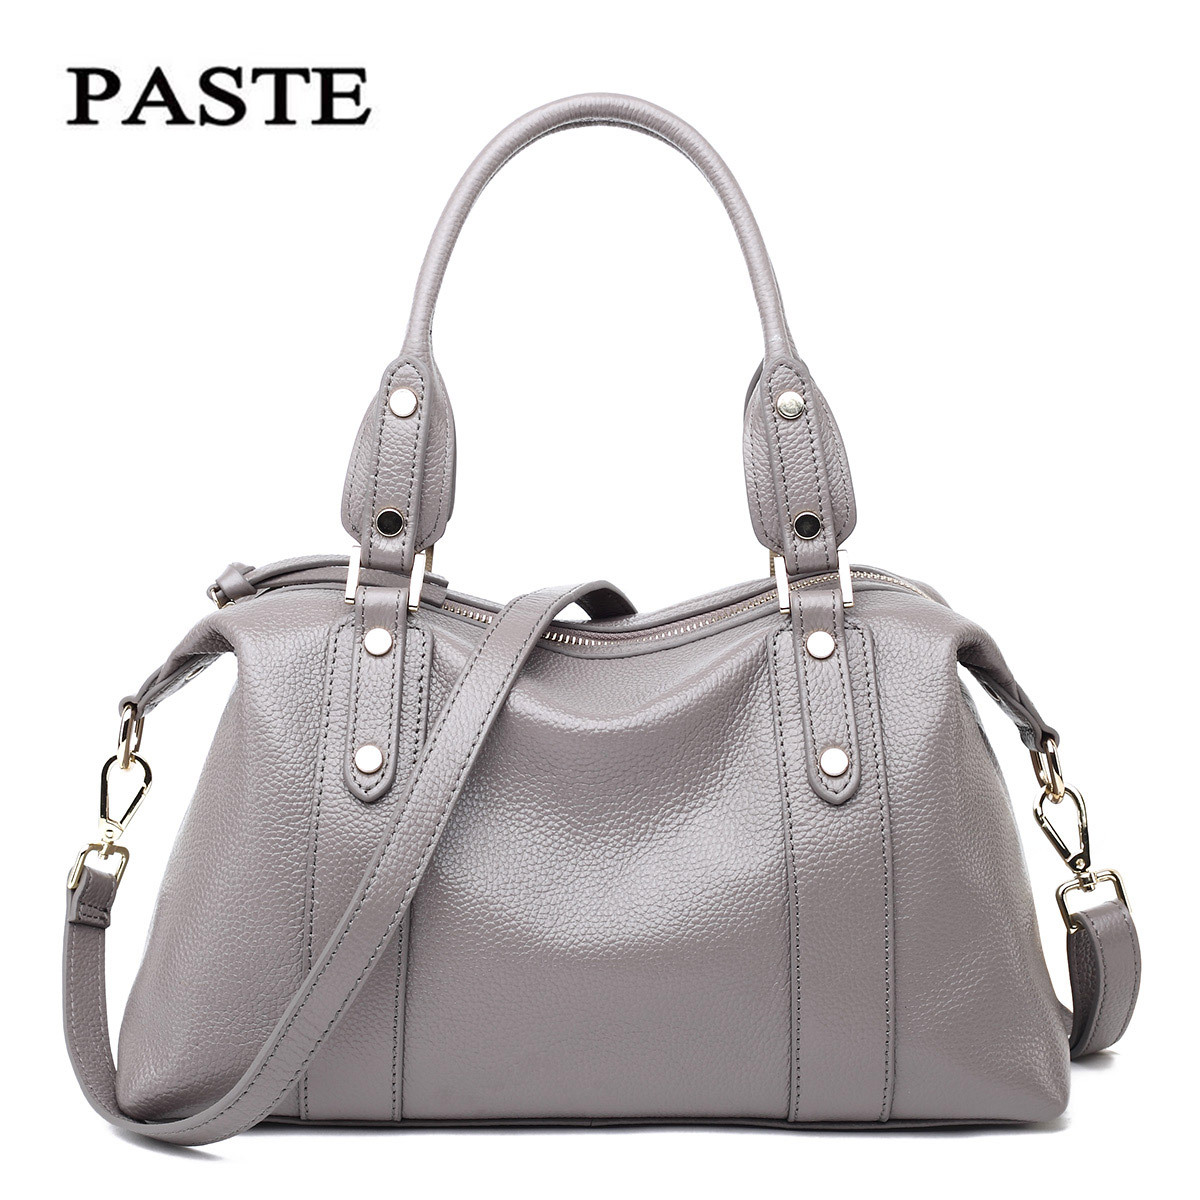 2017 Paste Brand Genuine Leather Bags for Women Handbag Rivets Designer Clutch Famous Brand Shoulder Bag Large Hobo Tote Bag